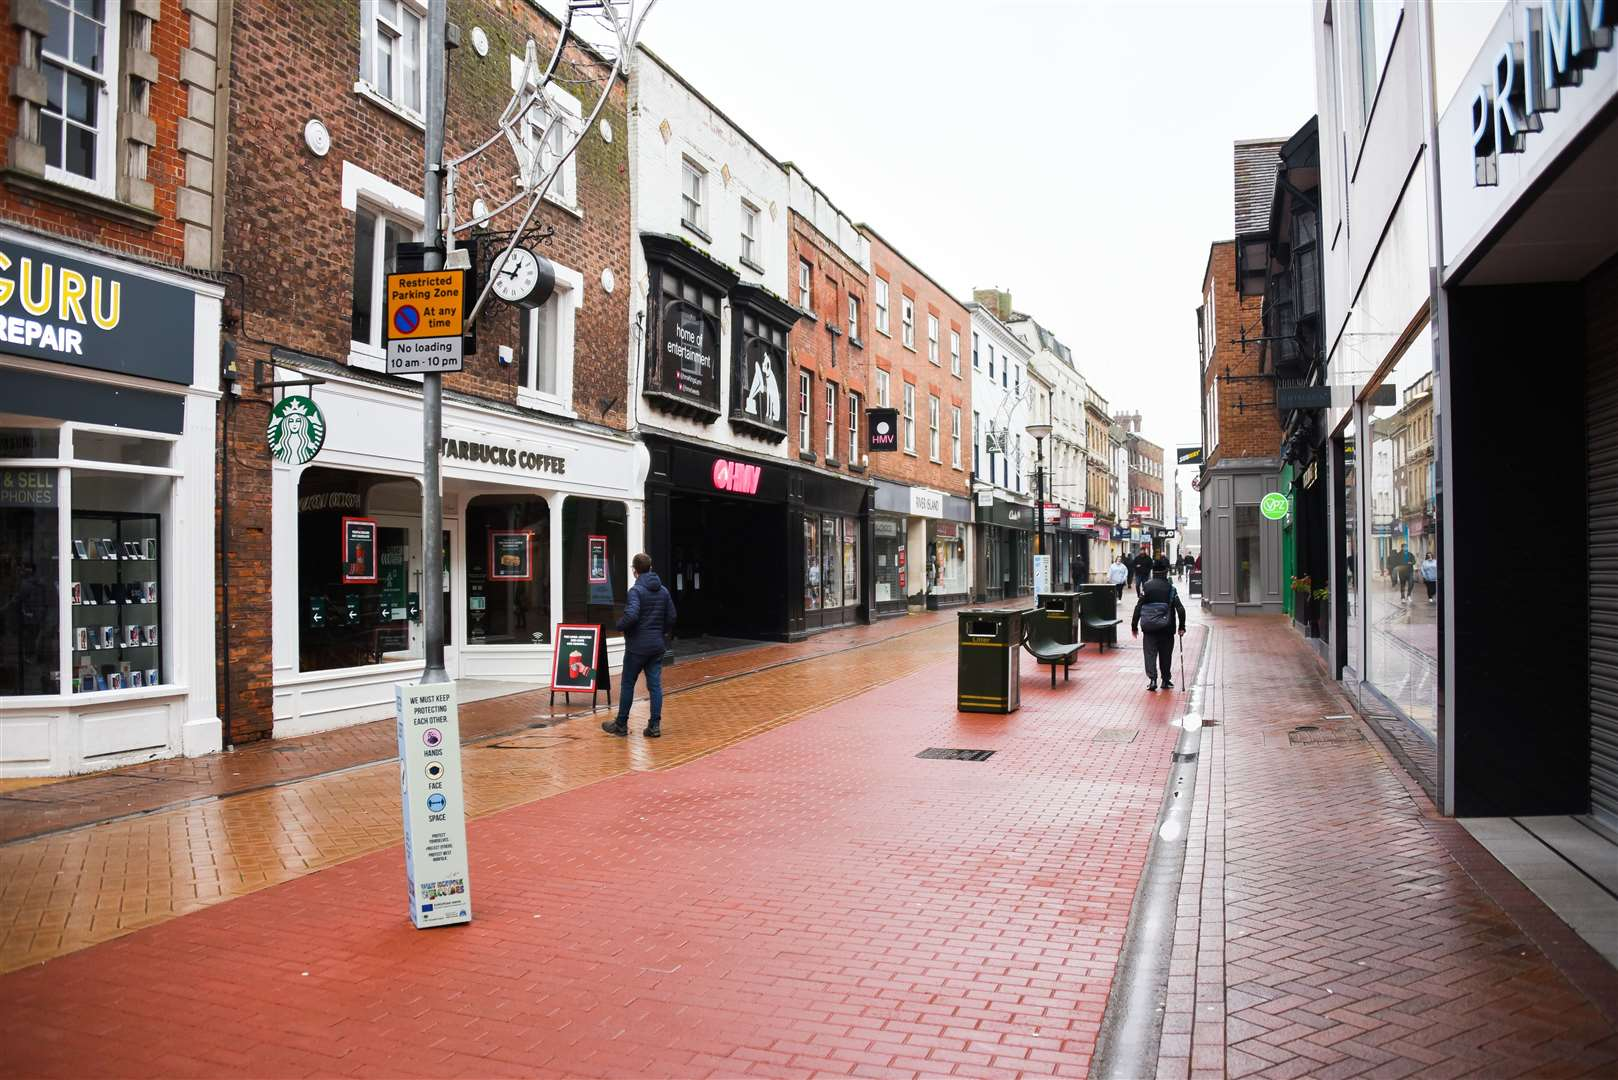 A bid for millions of pounds to help regenerate Lynn has been turned down.